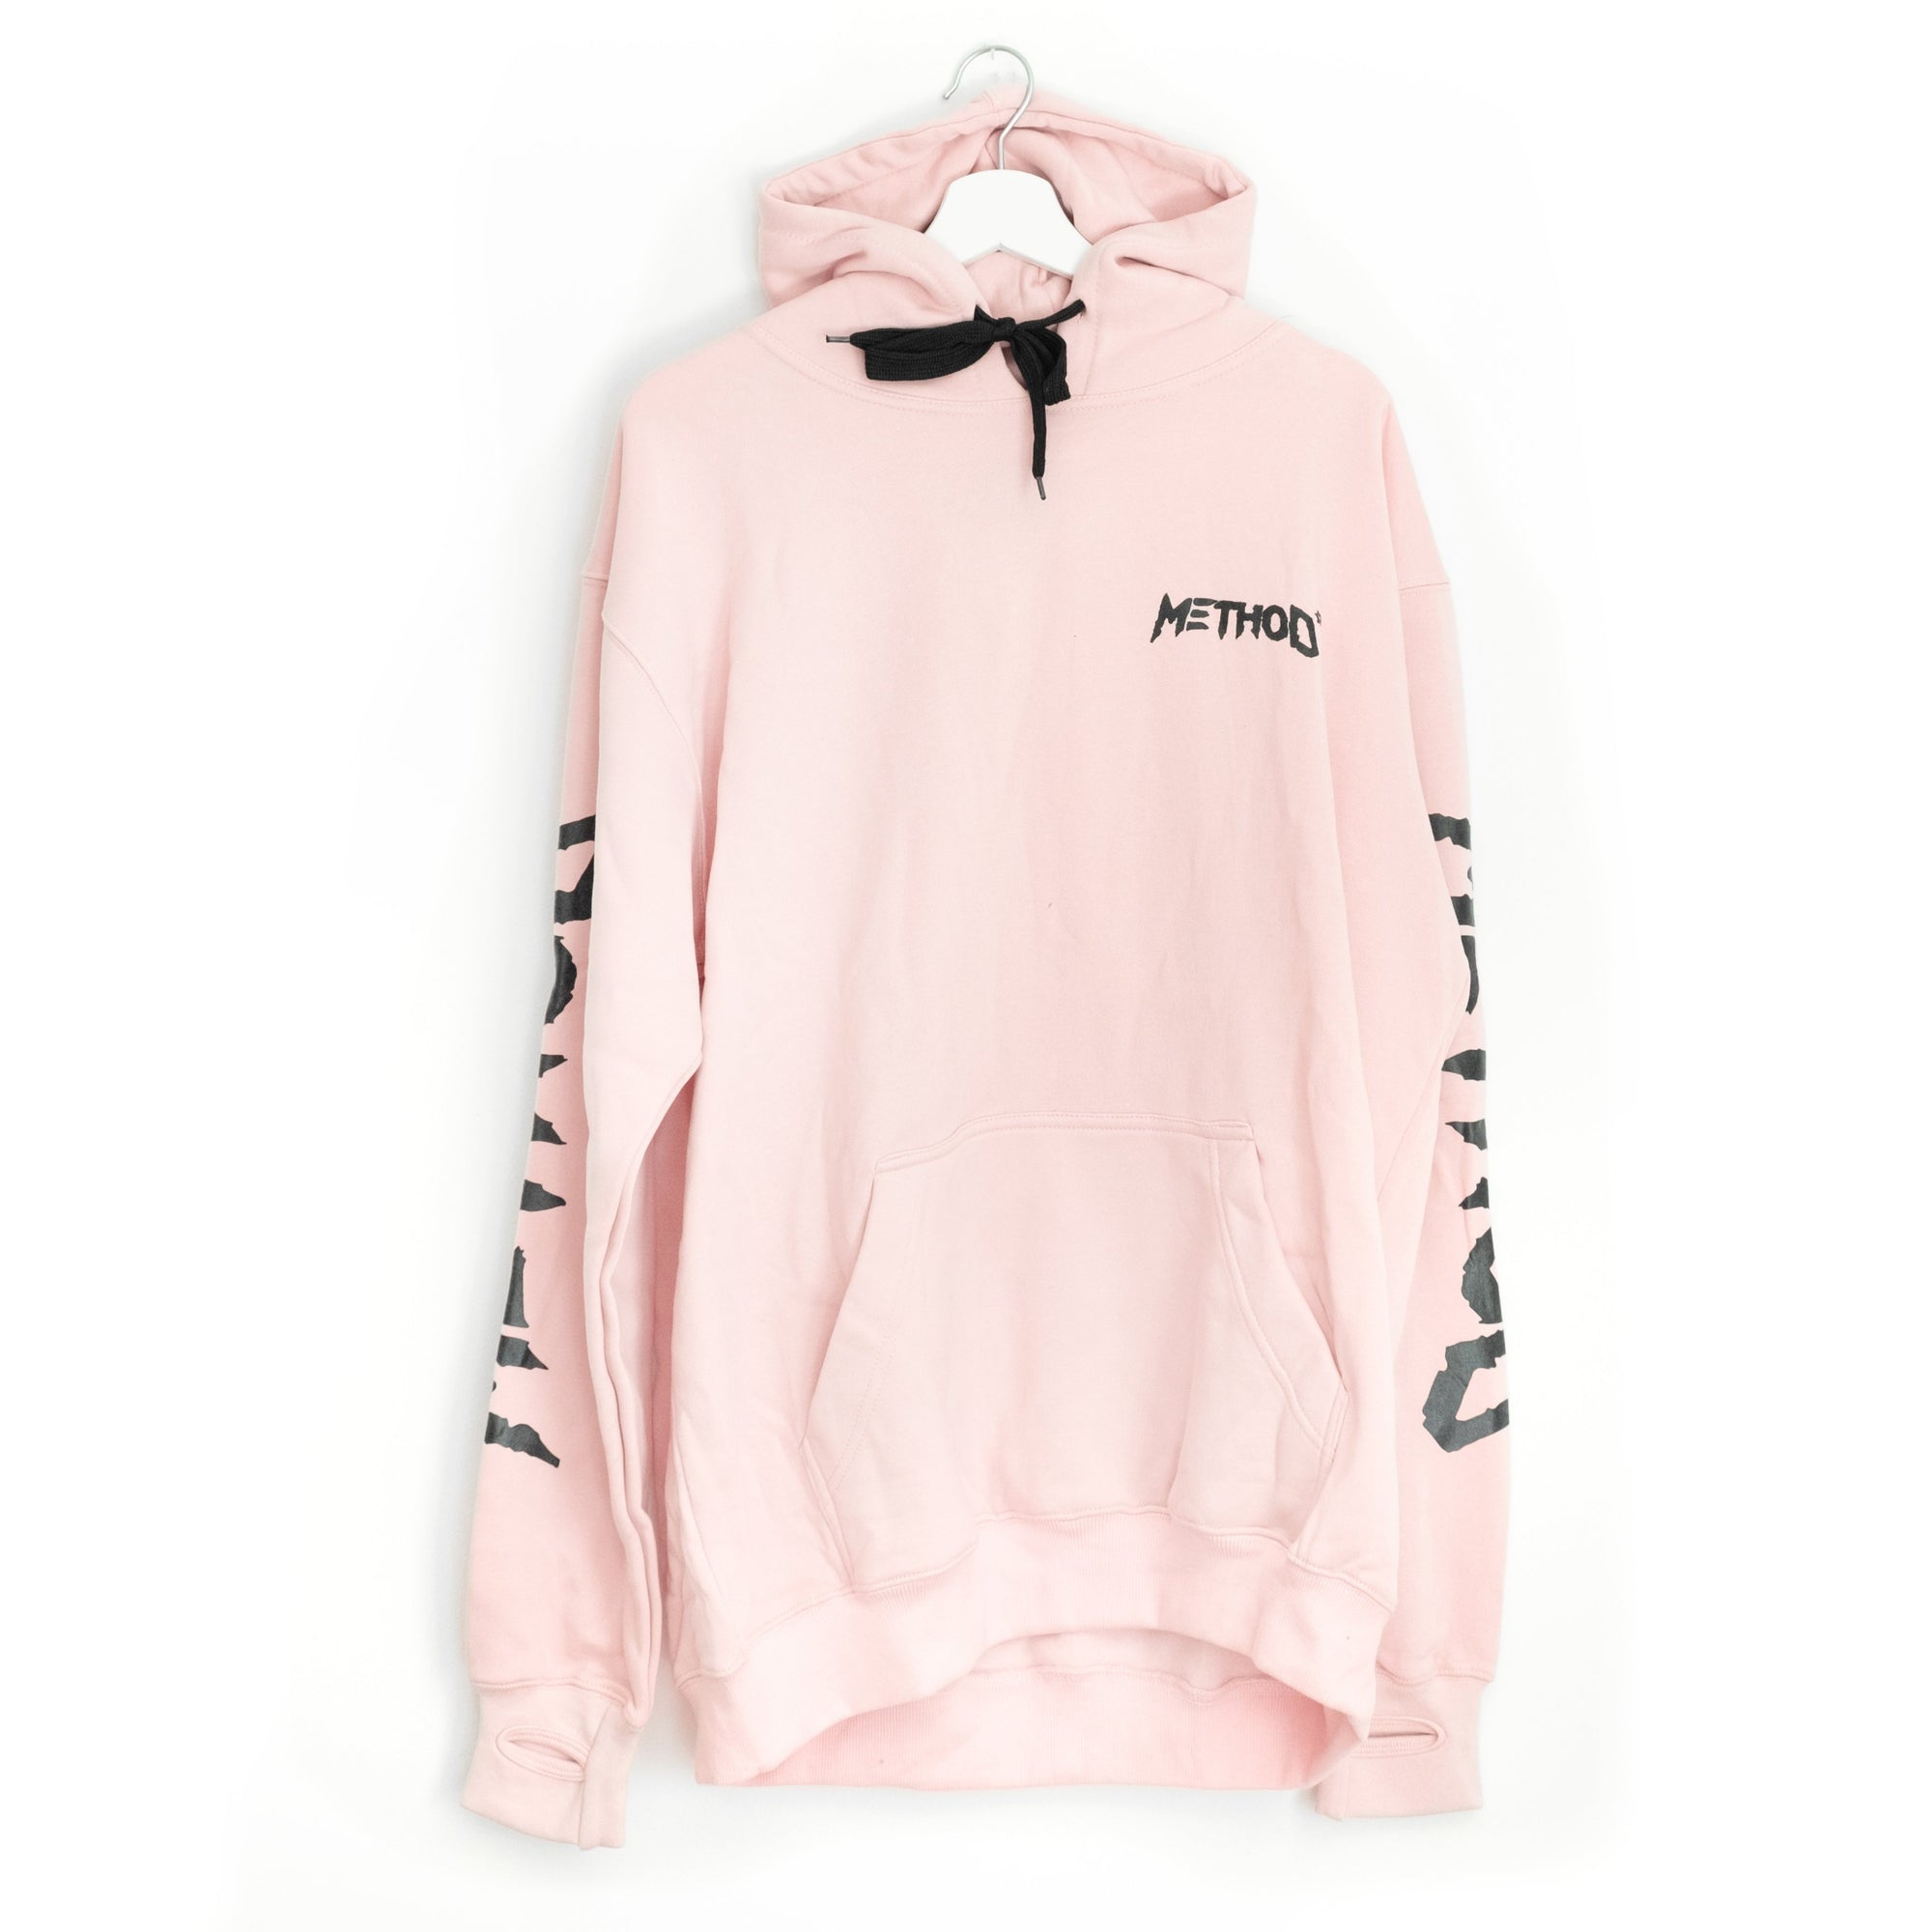 Method Movie 2.0 Hoodie